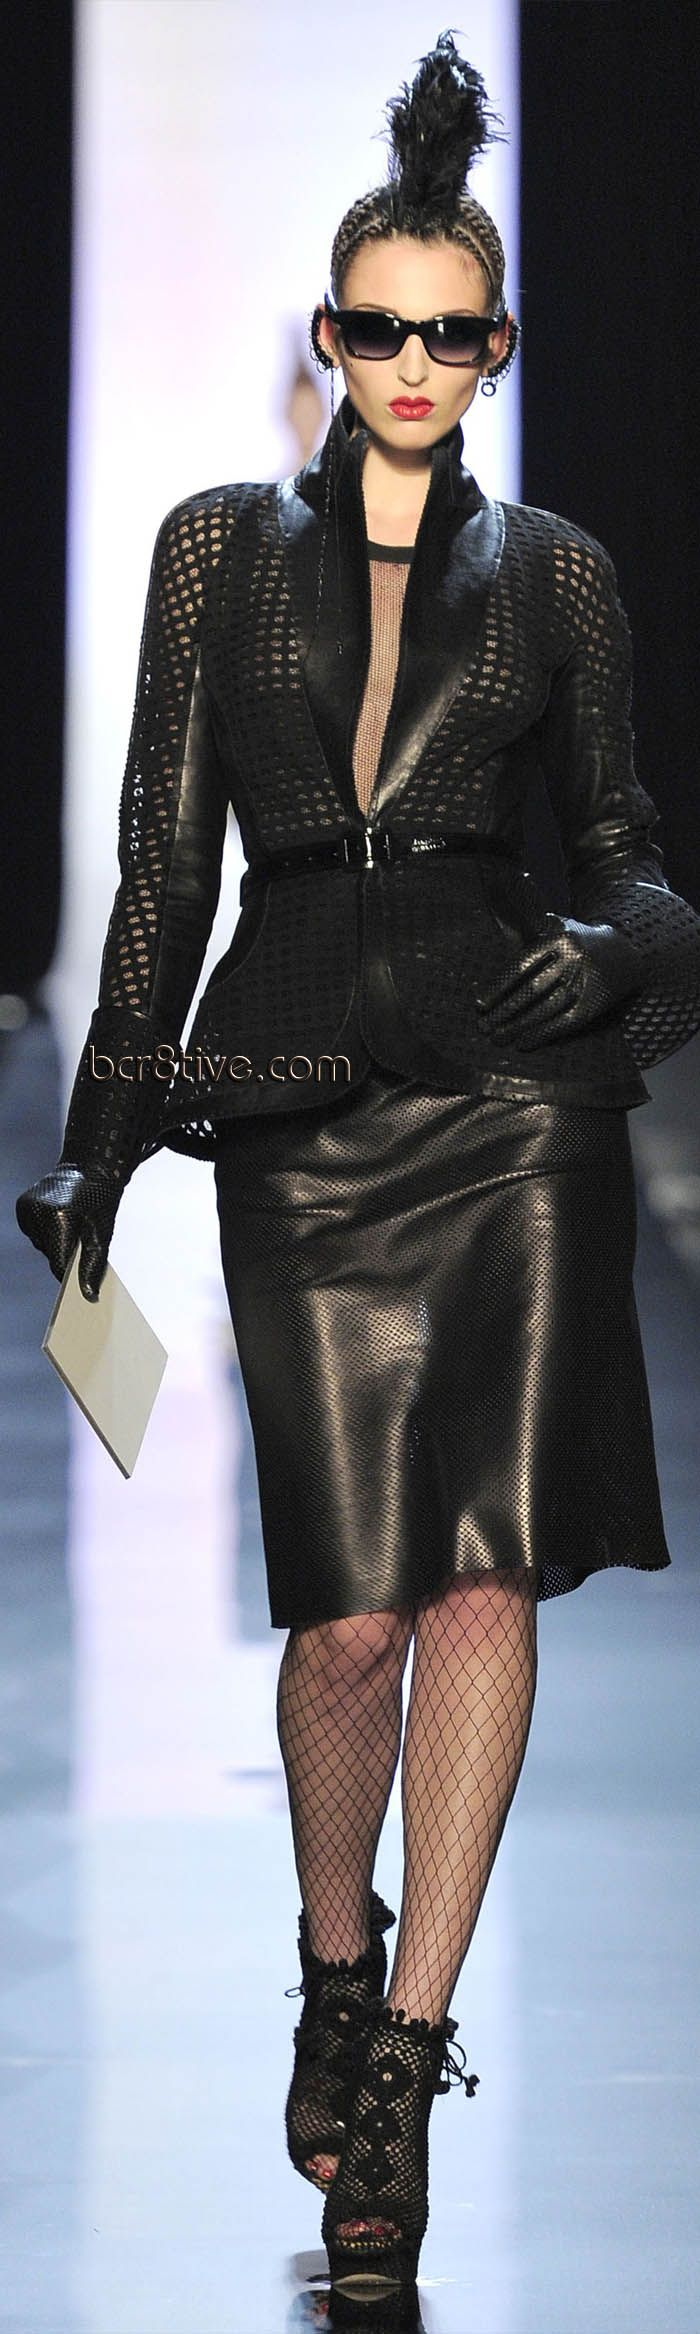 Jean Paul Gaultier Haute Couture Spring Summer 2011   The House of Beccaria